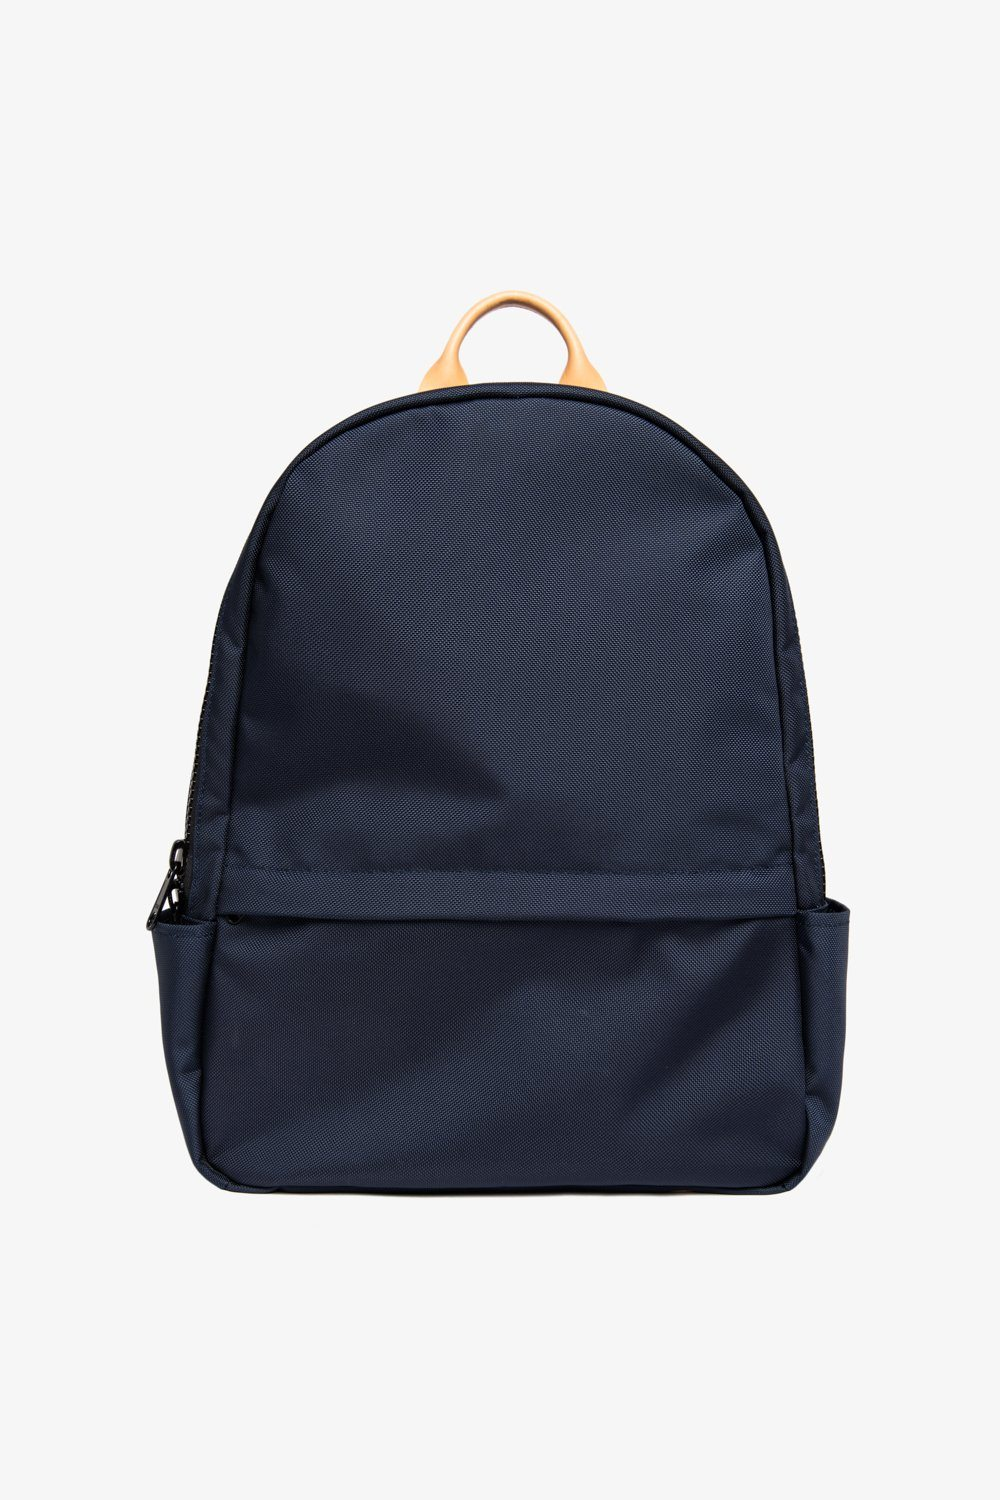 Pablo Backpack - Black Jack + Mulligan Navy